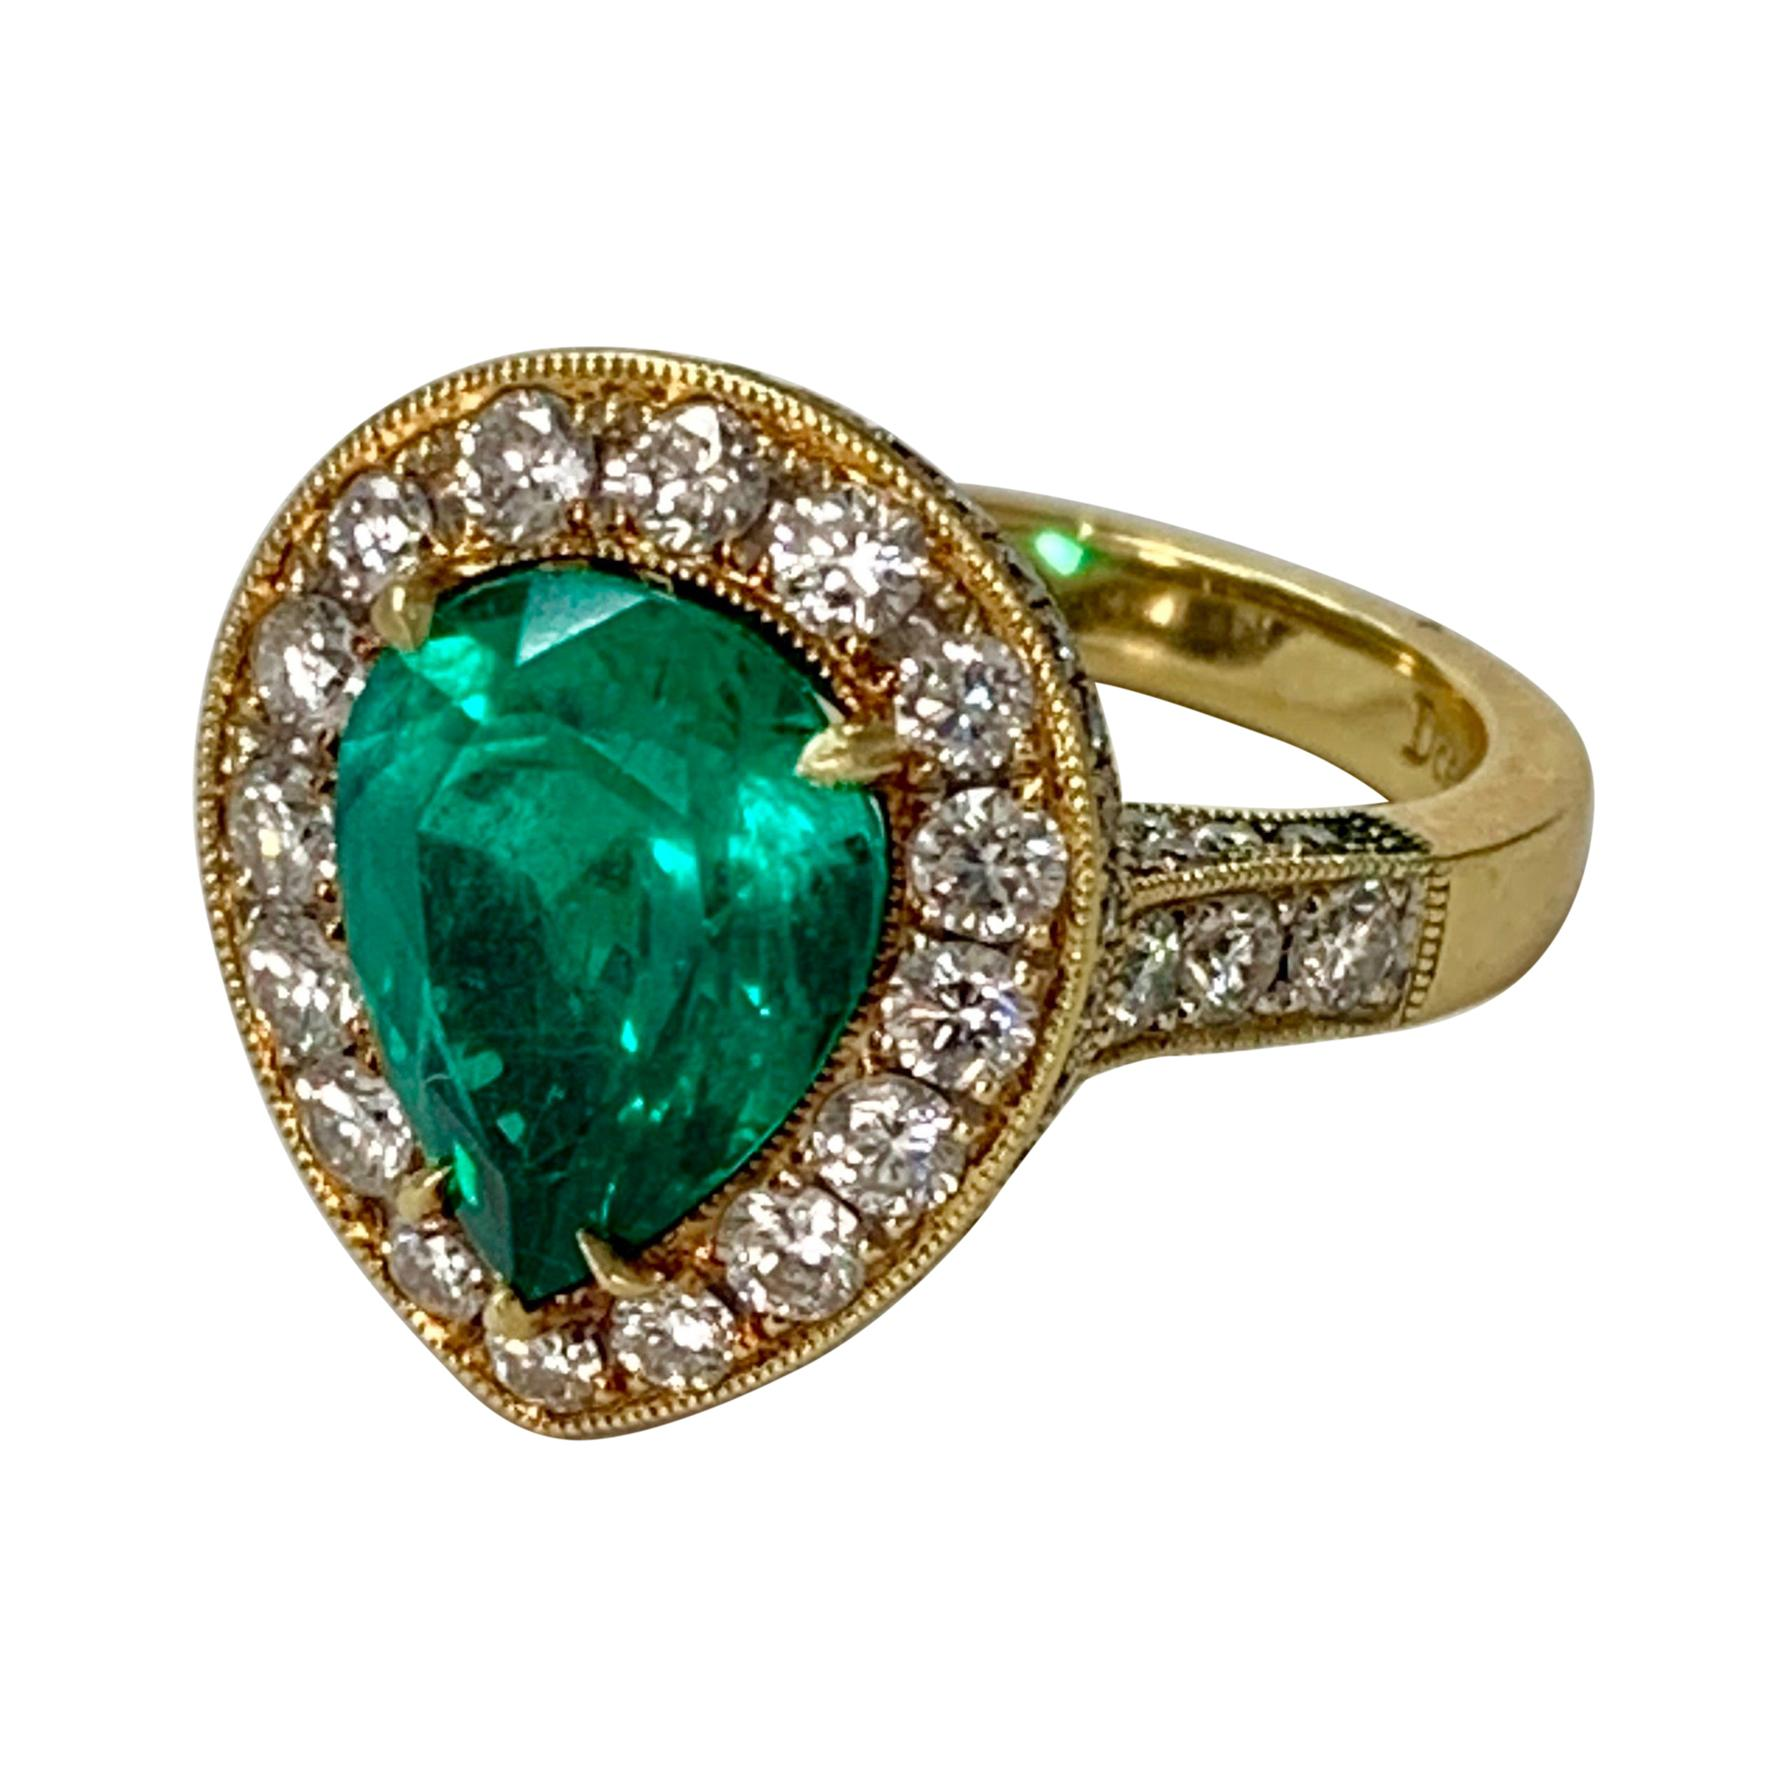 Columbian 3.25 Carat Emerald and Diamond Engagement Ring in 18K Yellow Gold